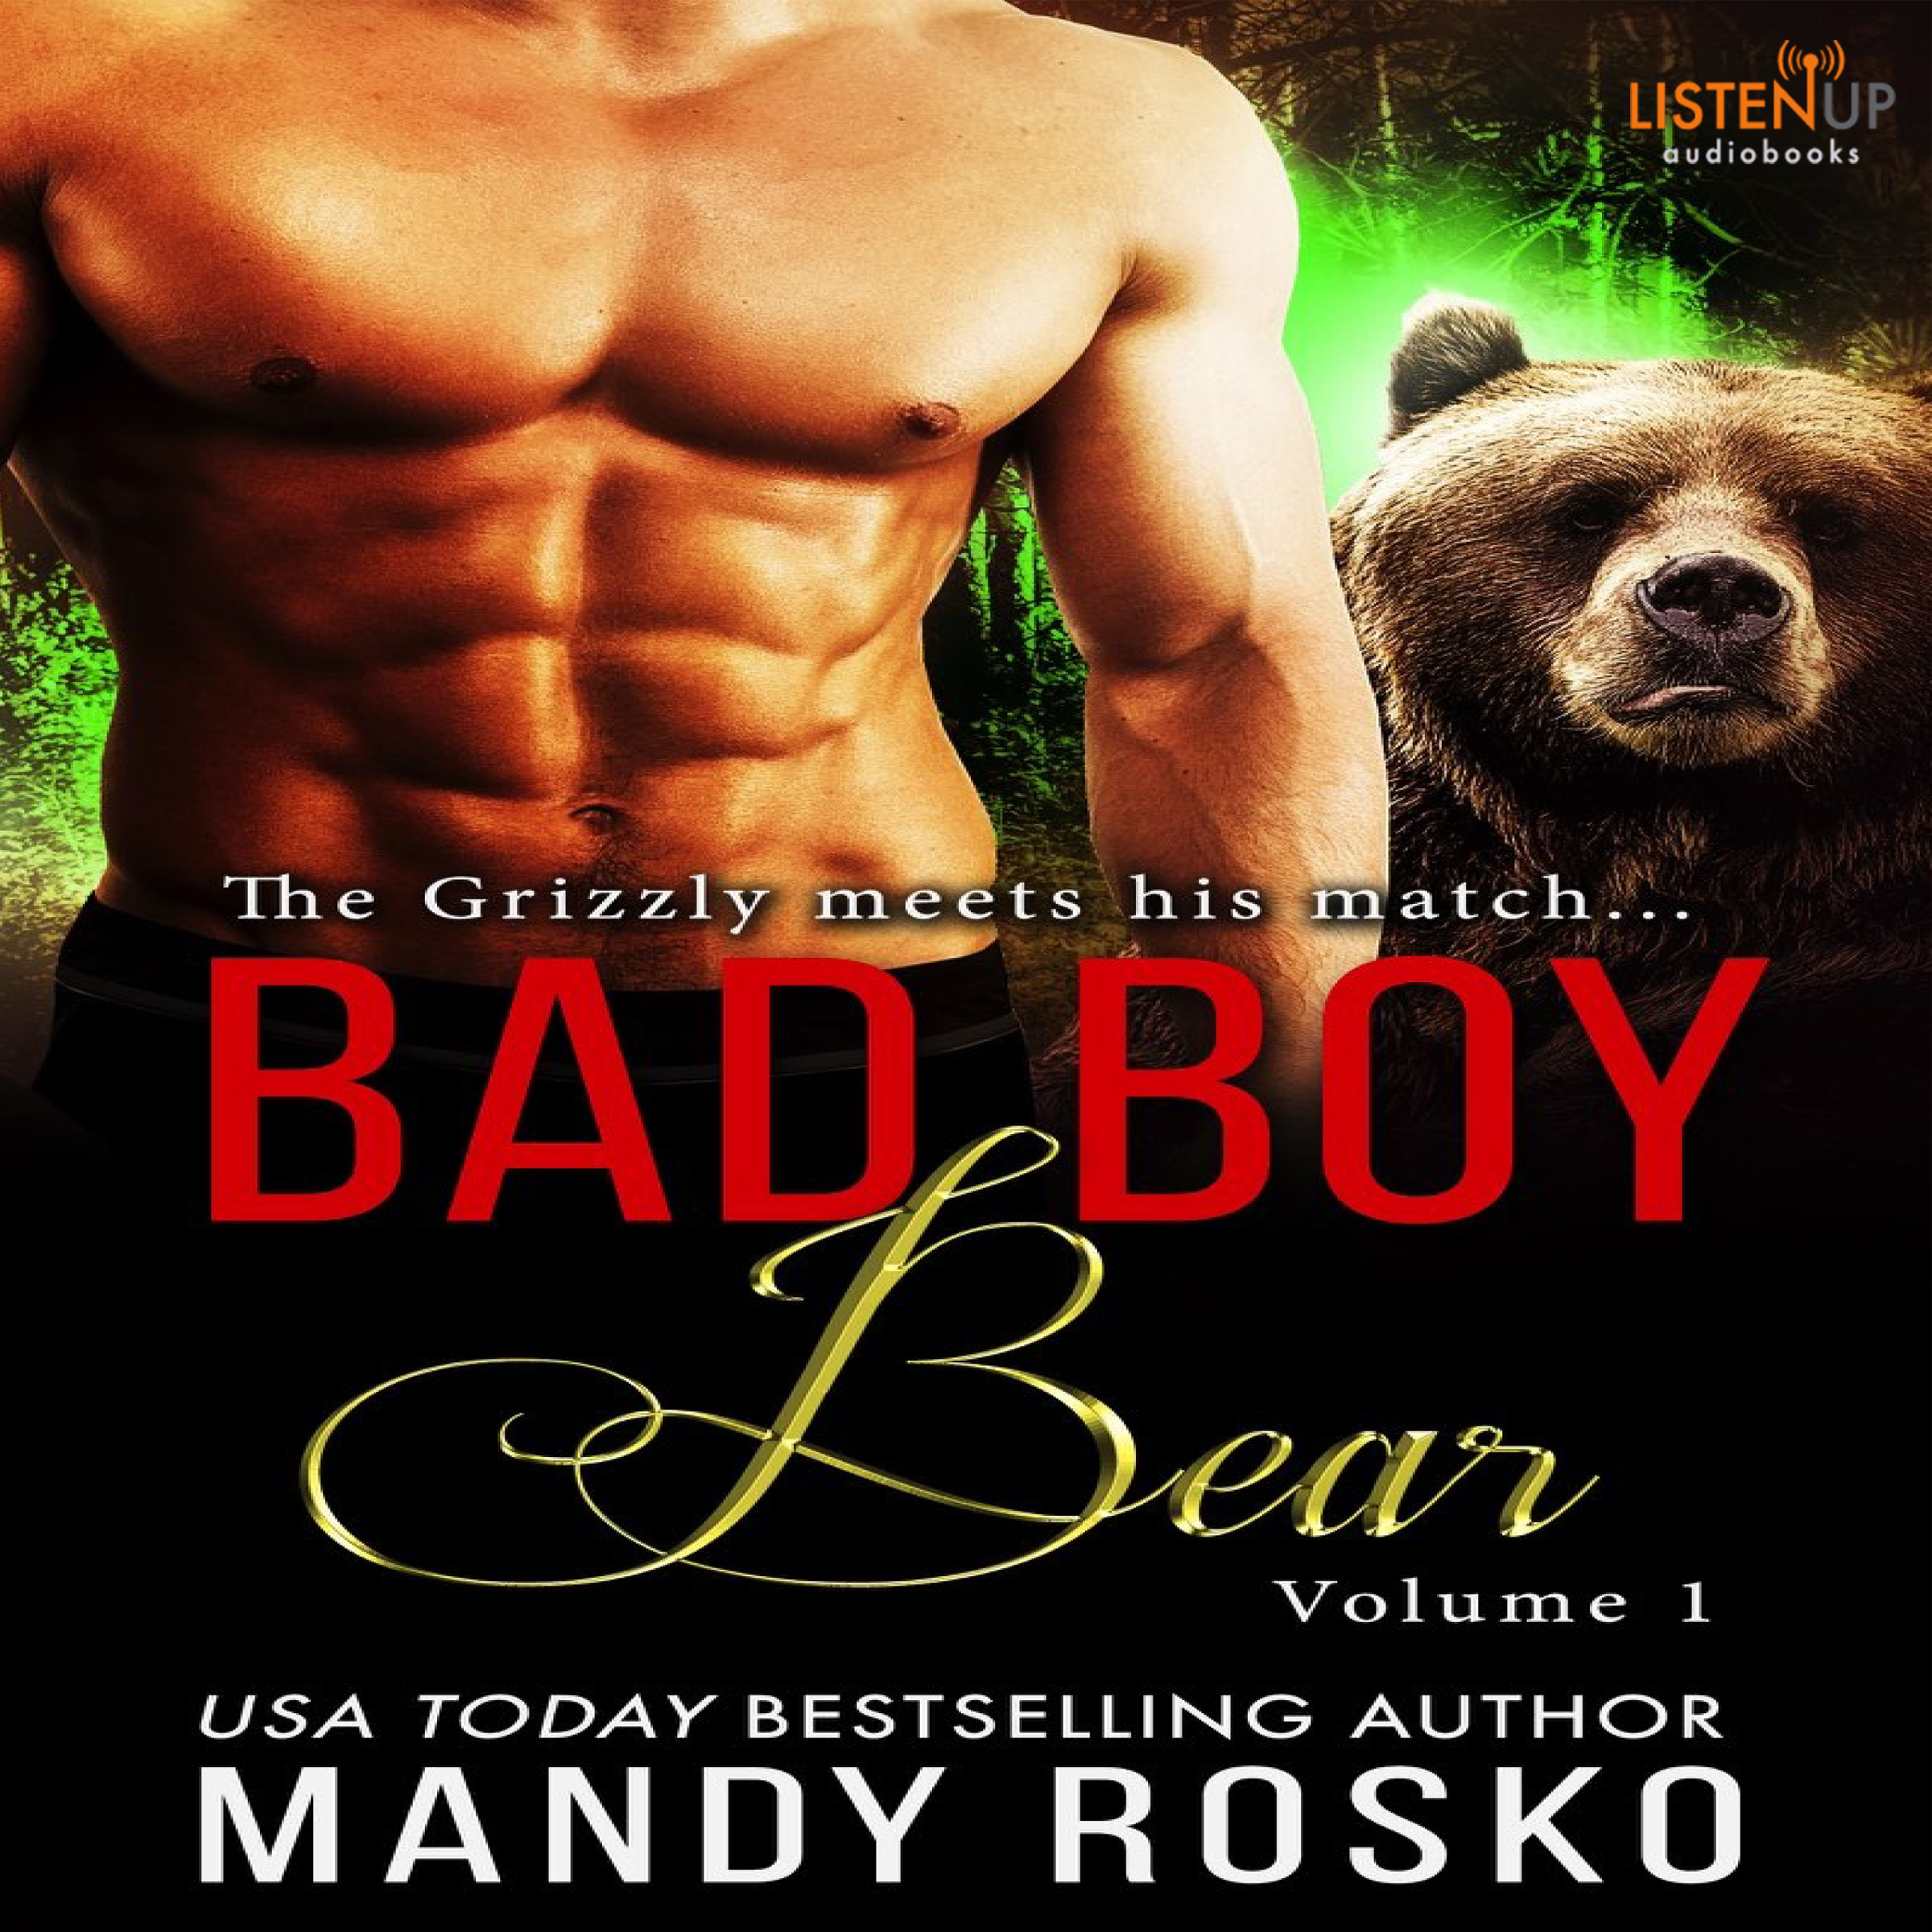 Bad Boy Bear cover image